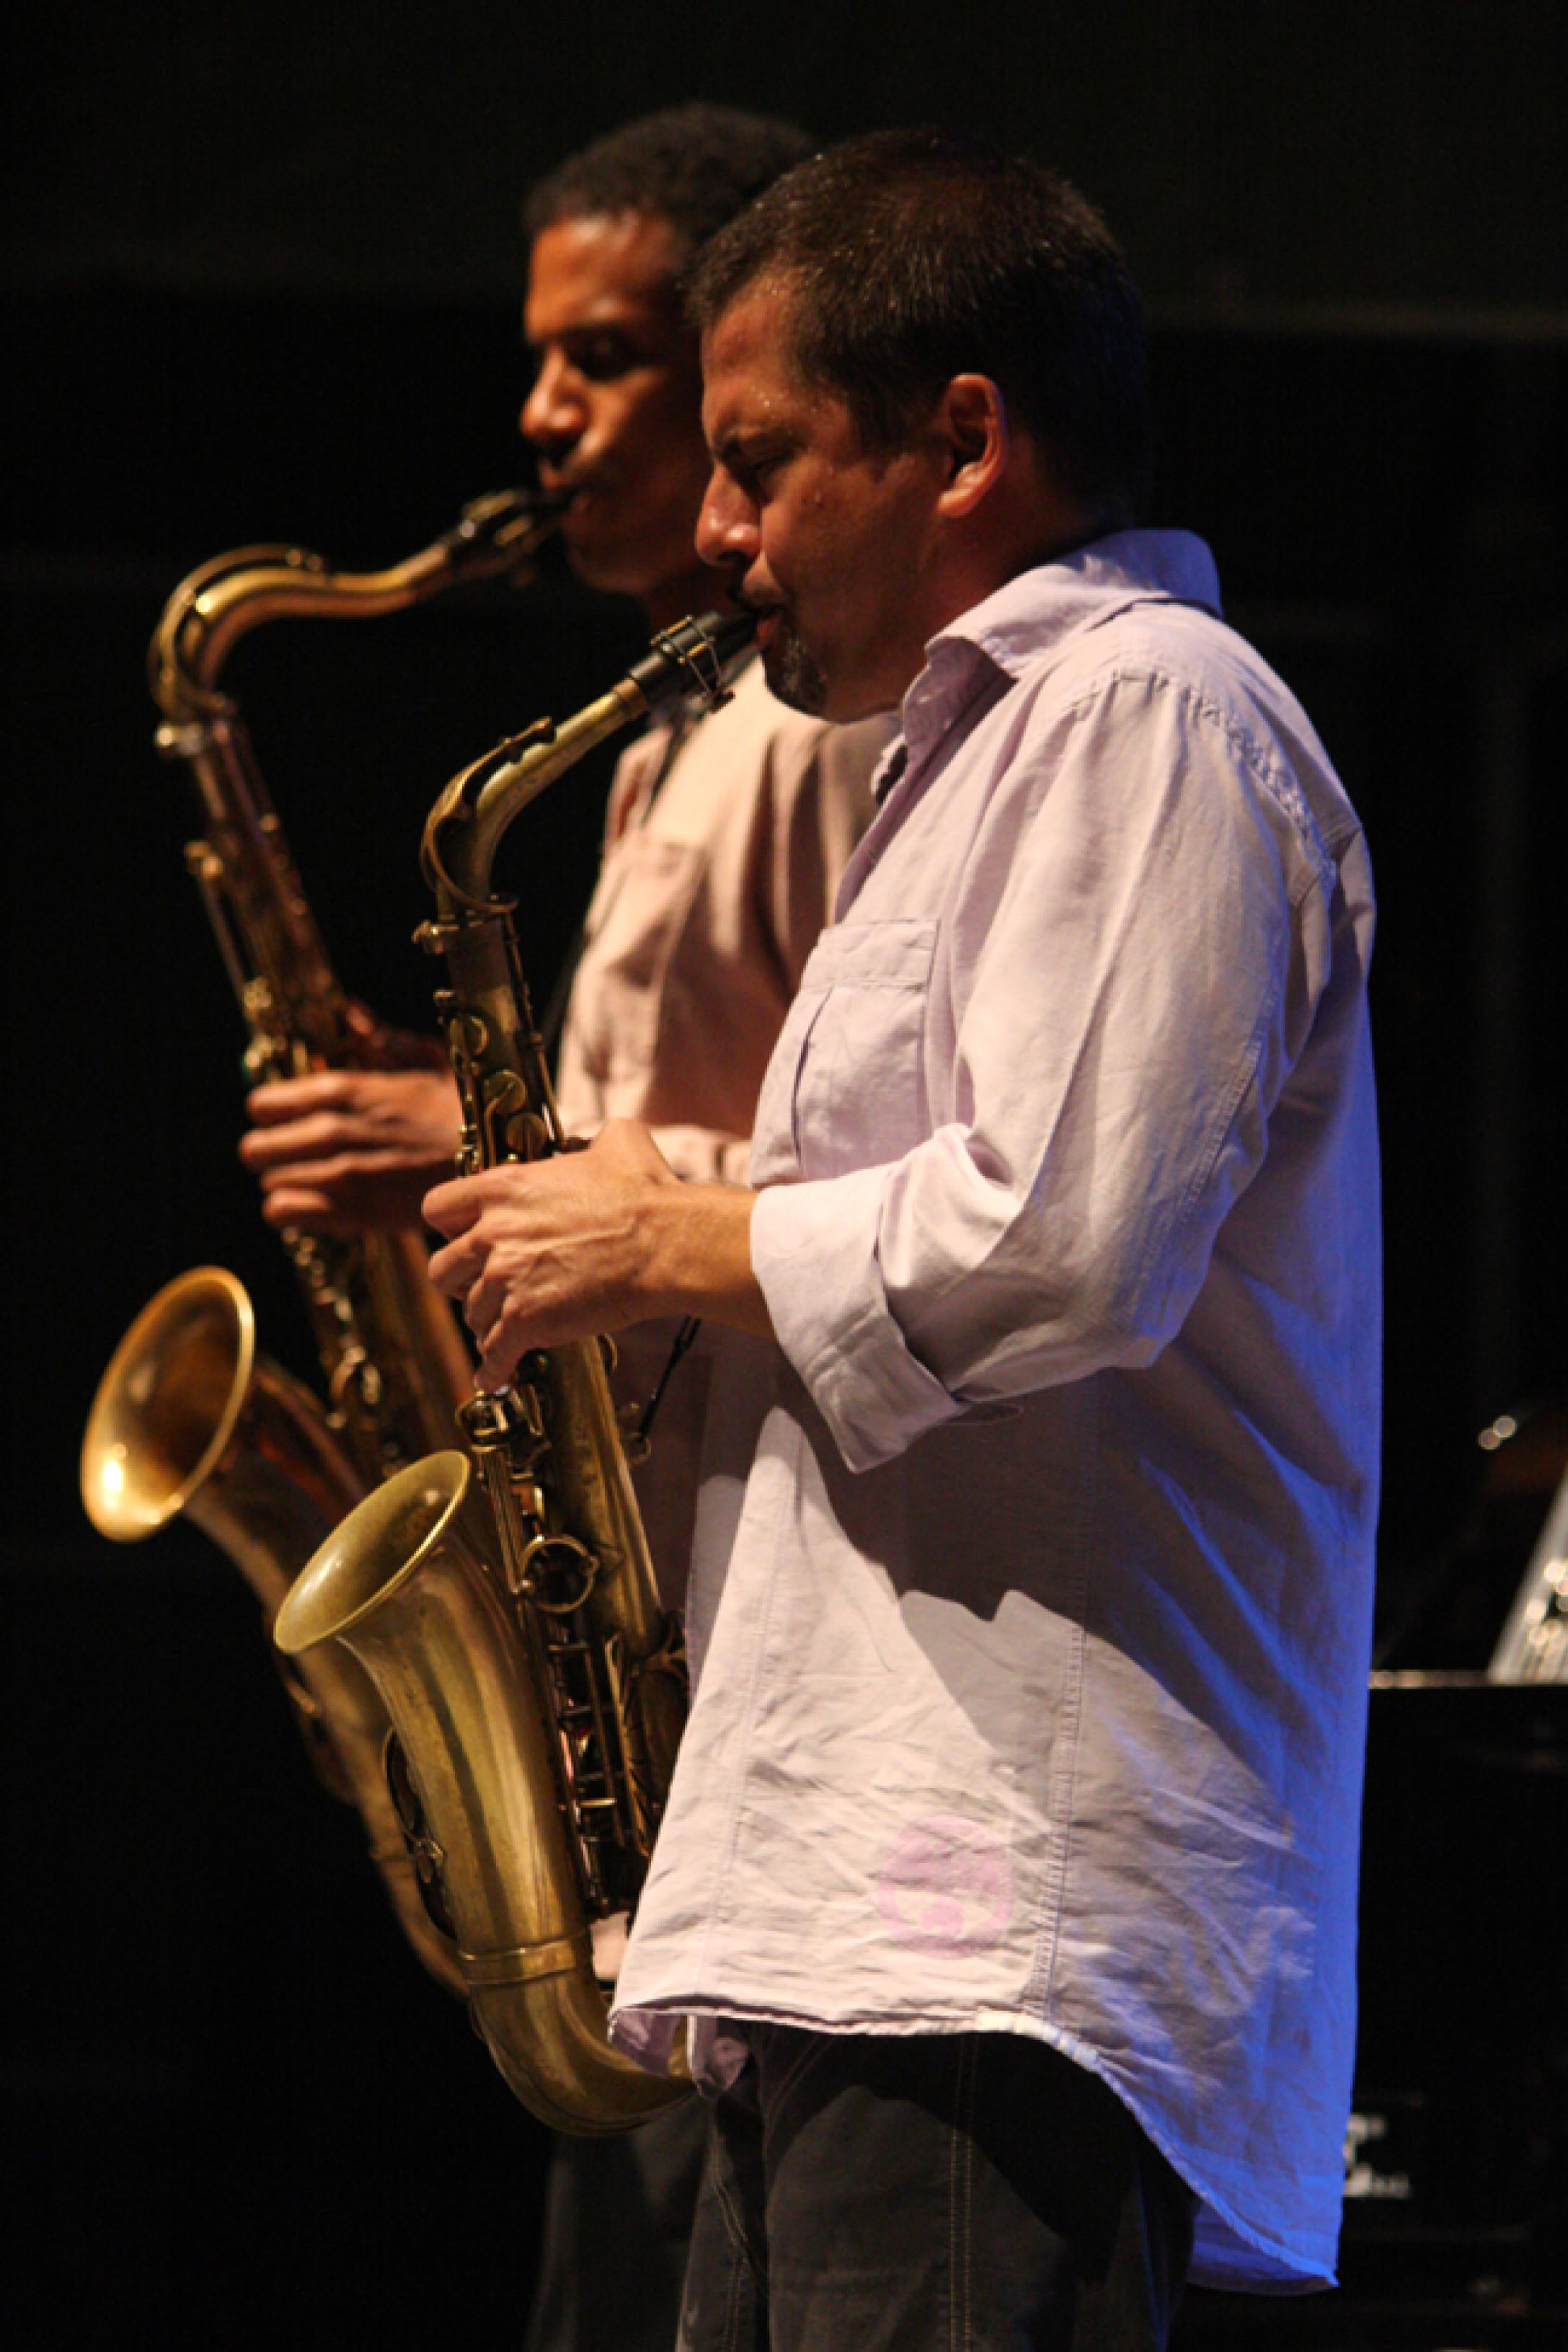 Rosario Giuliani live in jazz sax